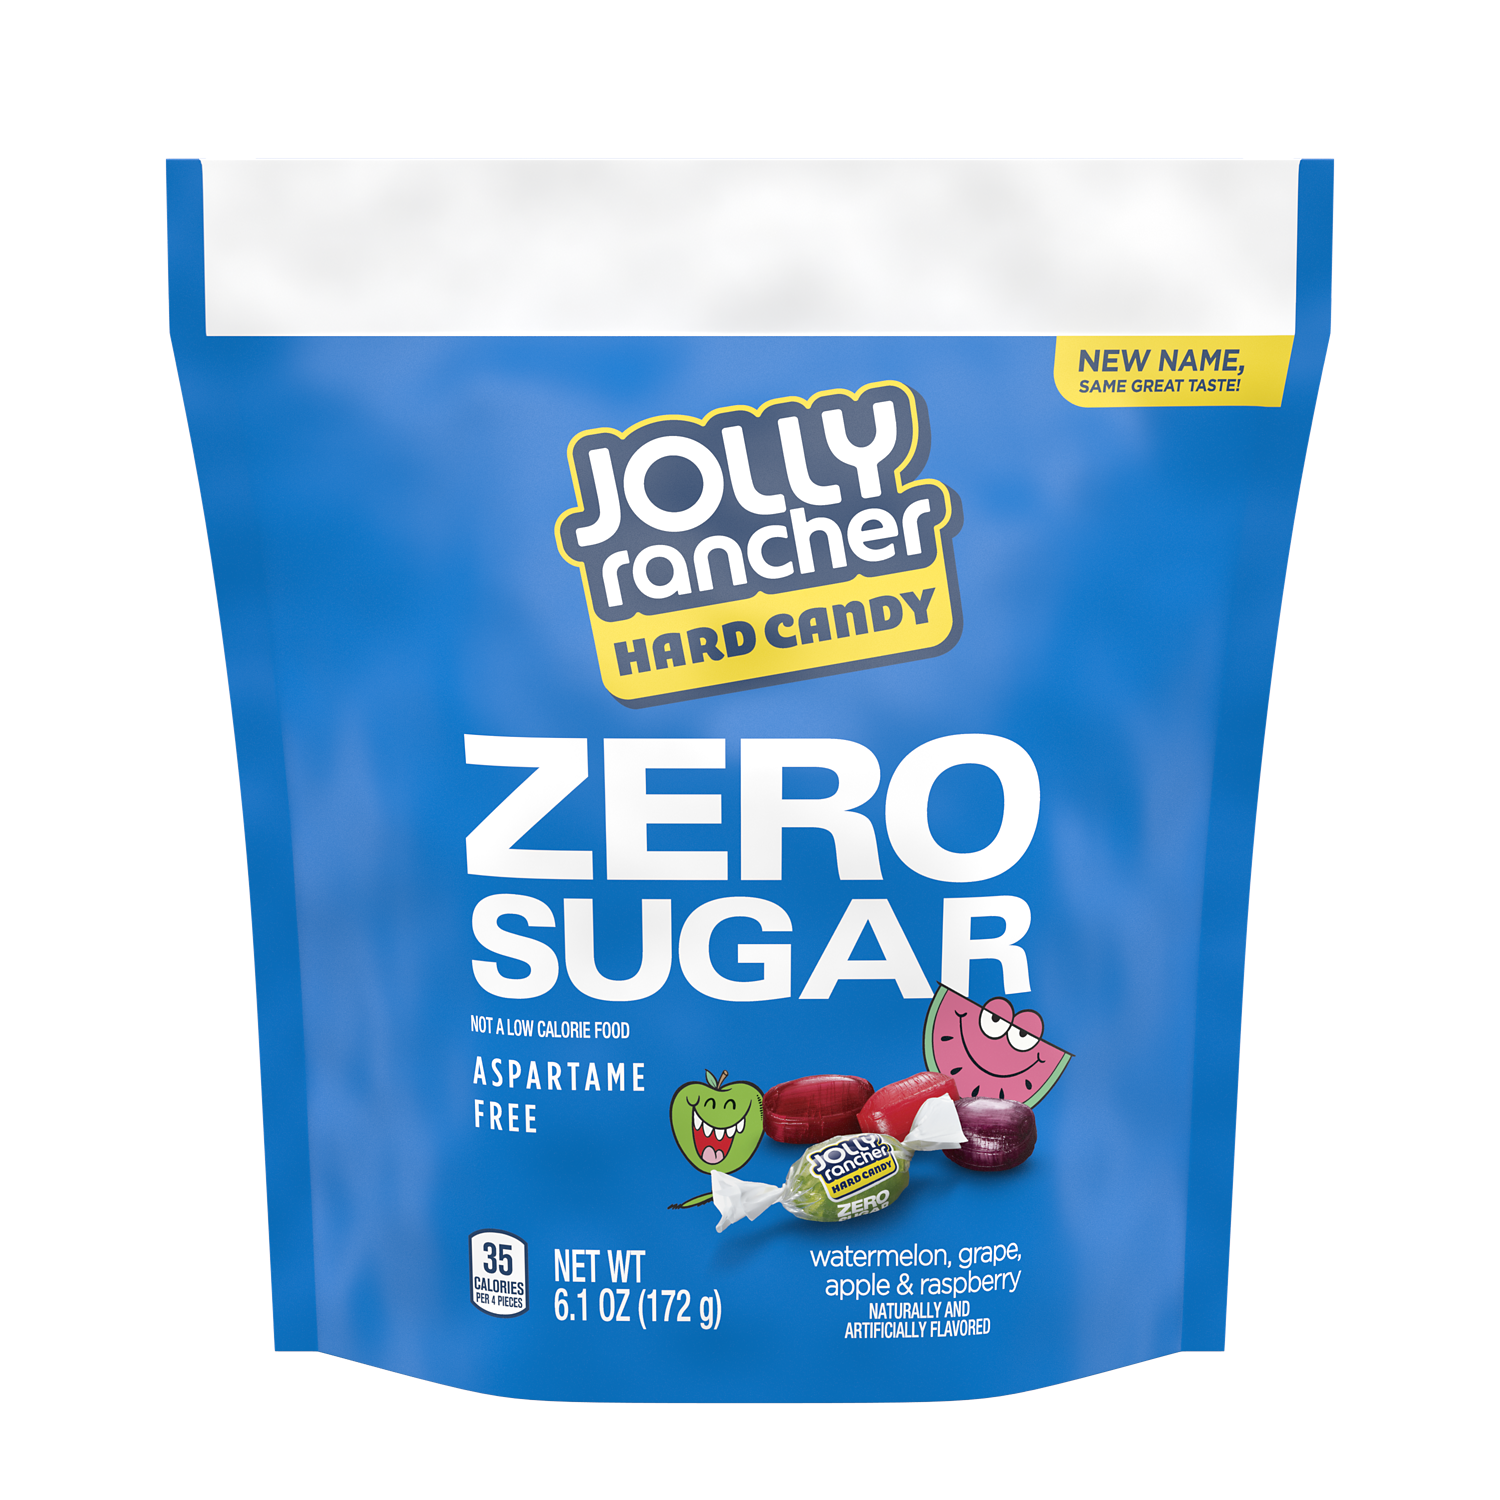 JOLLY RANCHER Zero Sugar Original Flavors Hard Candy, 6.1 oz bag - Front of Package